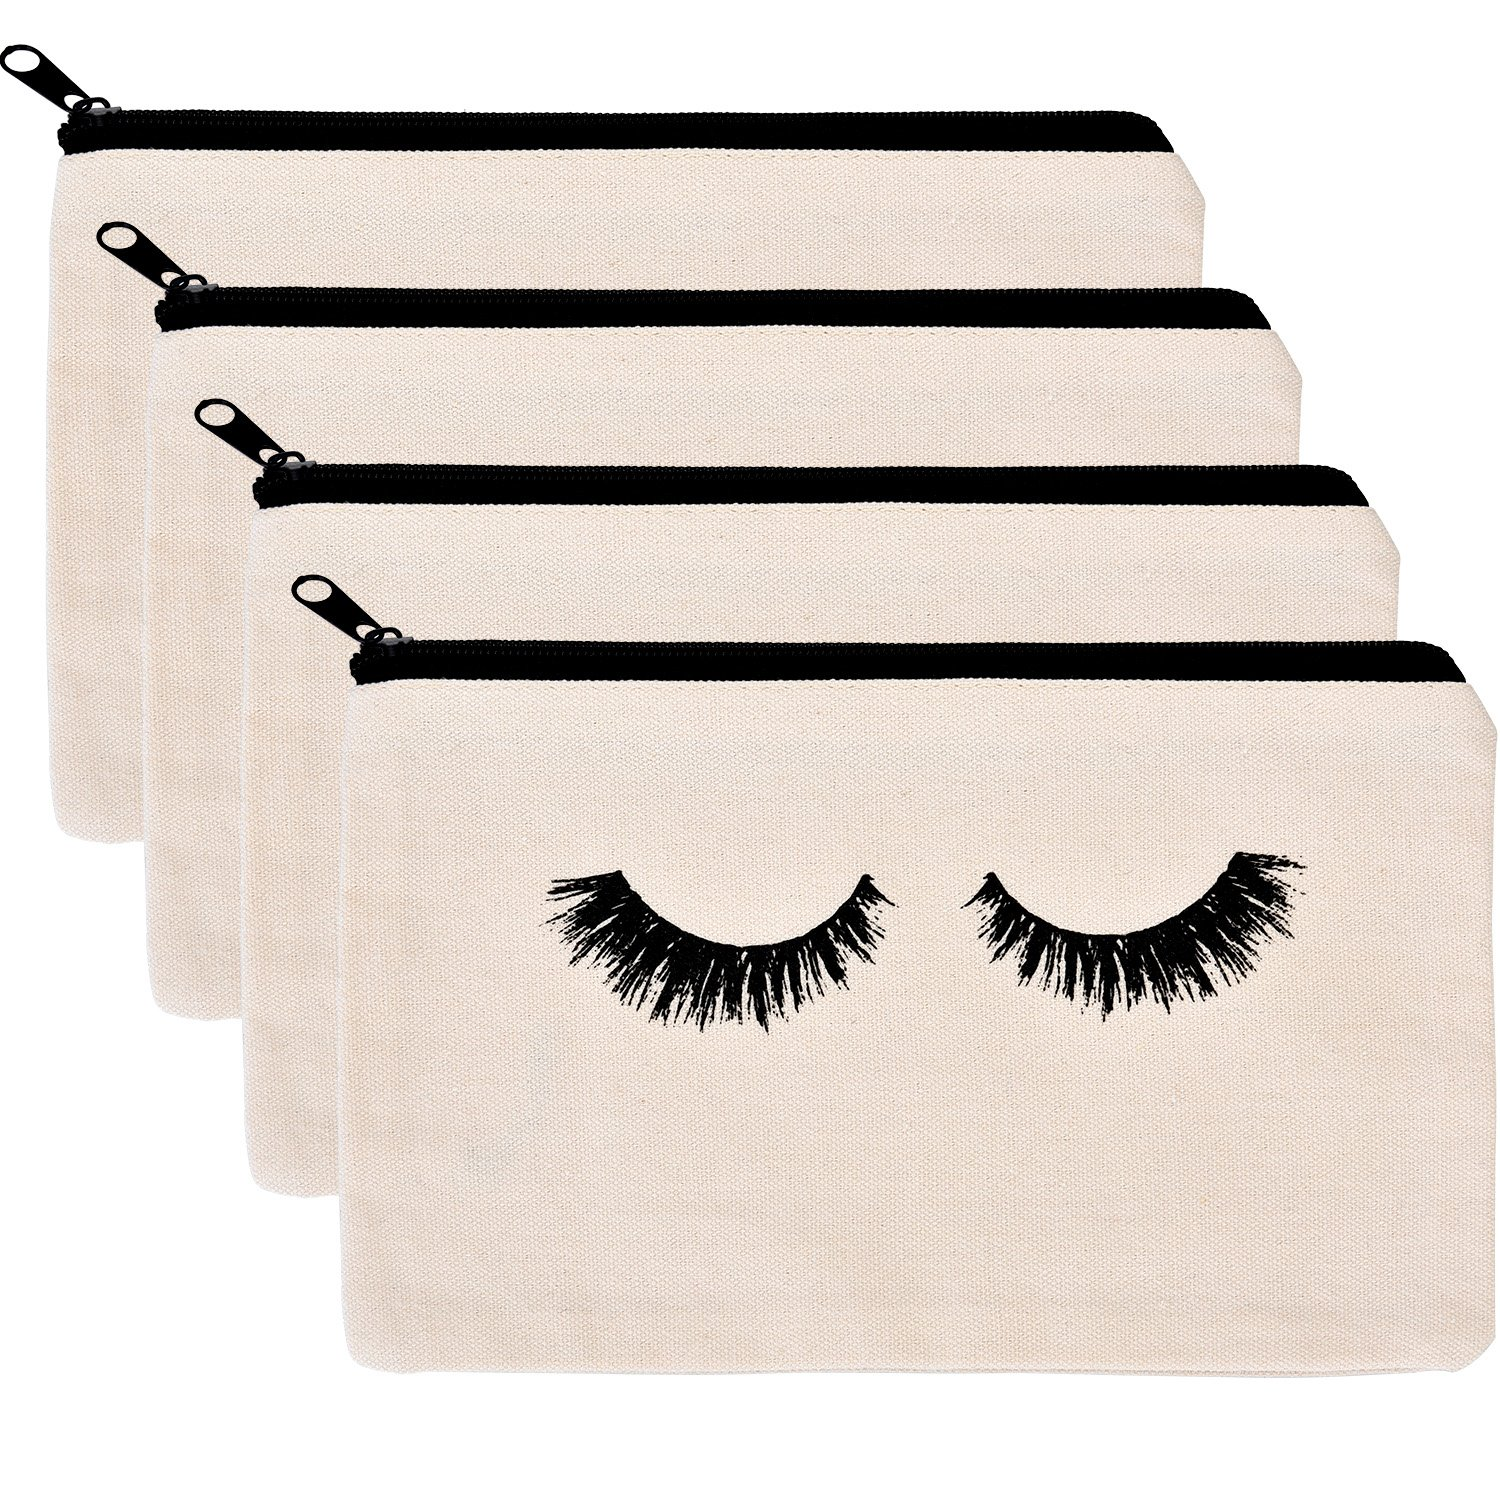 BBTO 4 Pack Makeup Bag Cosmetic Pouch Makeup Pouch Travel Toiletry Eyelash Case with Zippered Pocket